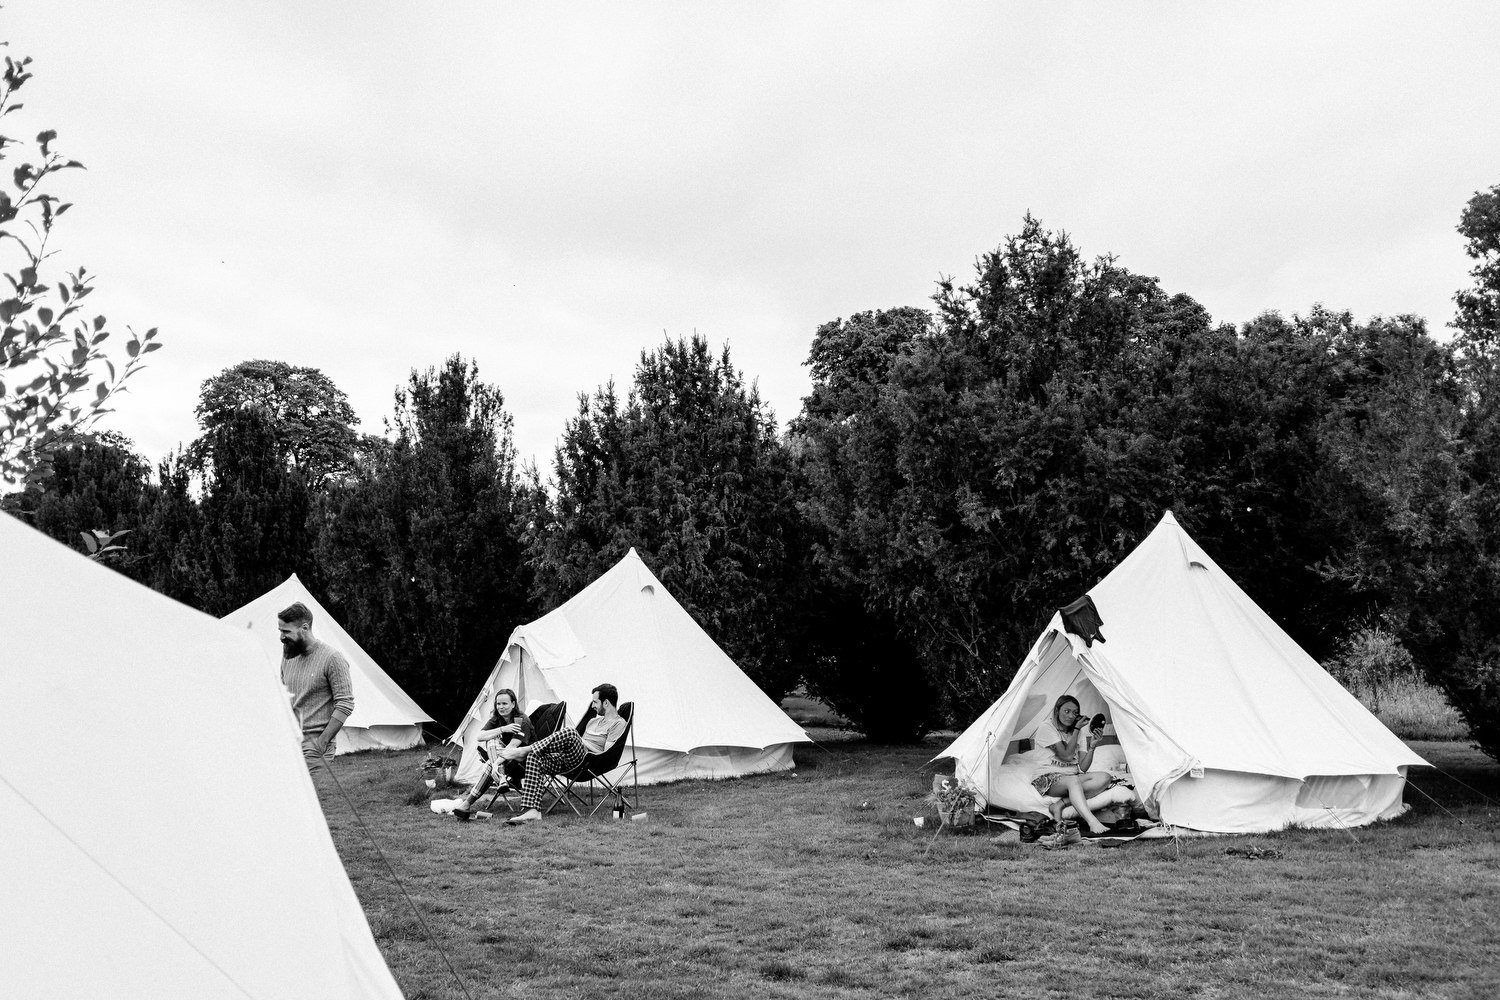 dmp0121_preparation_guests_gardens_ballintubbert_house_morning_glamping_teepee_tents_festival_wedding